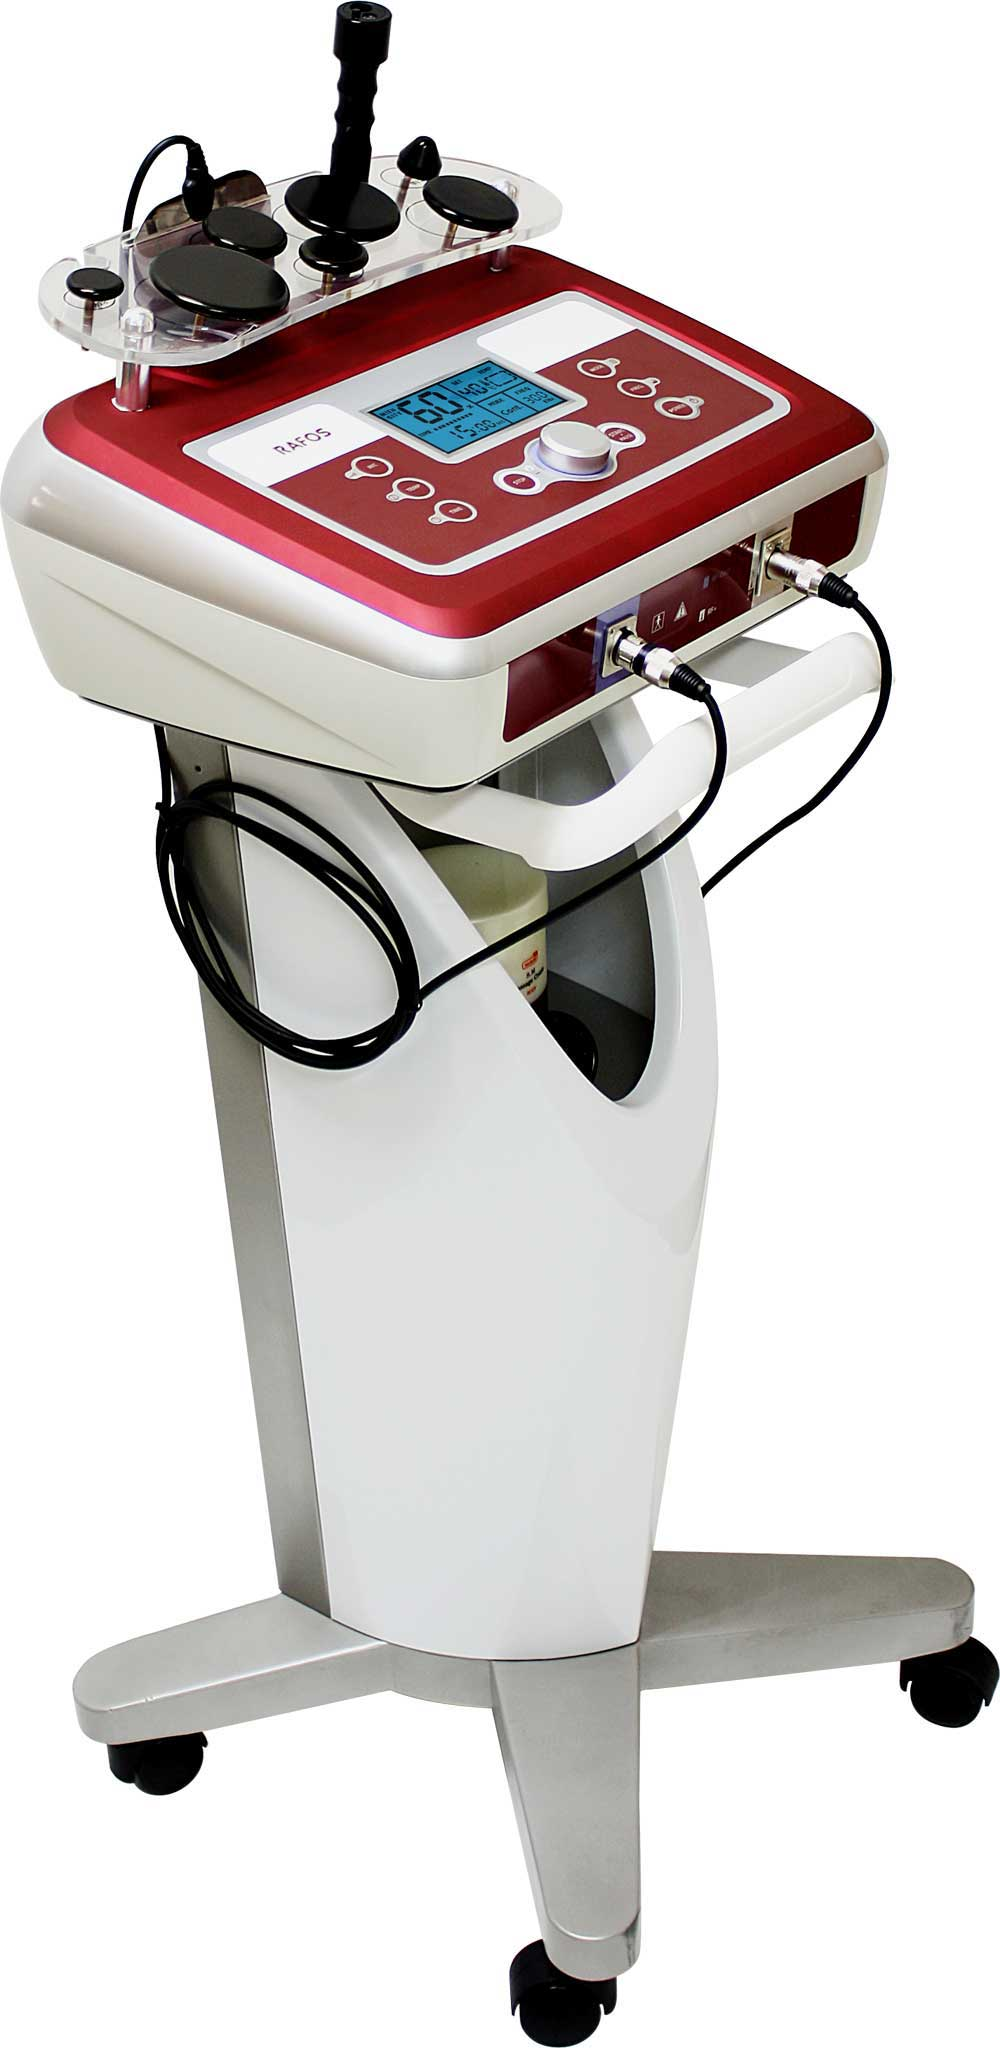 RF Diathermy Machine, CWM-901